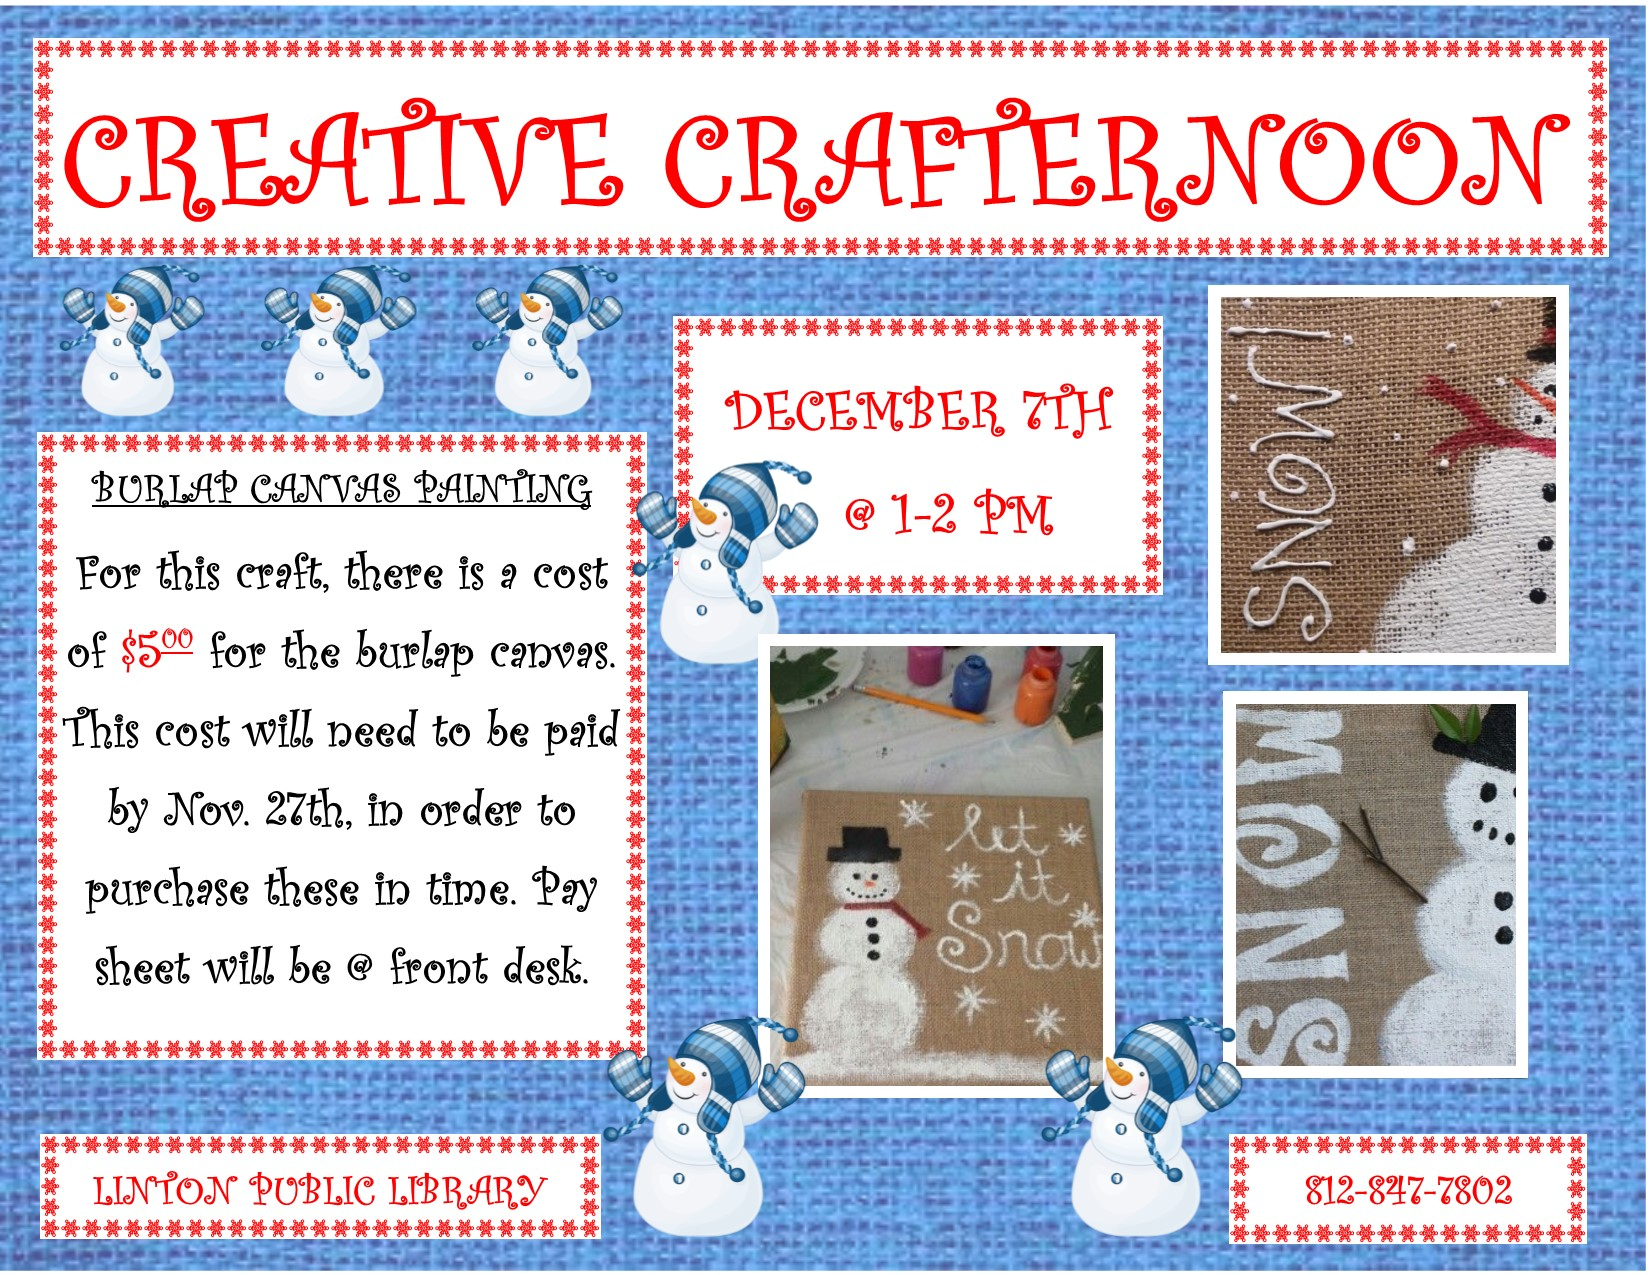 Creative Crafternoon